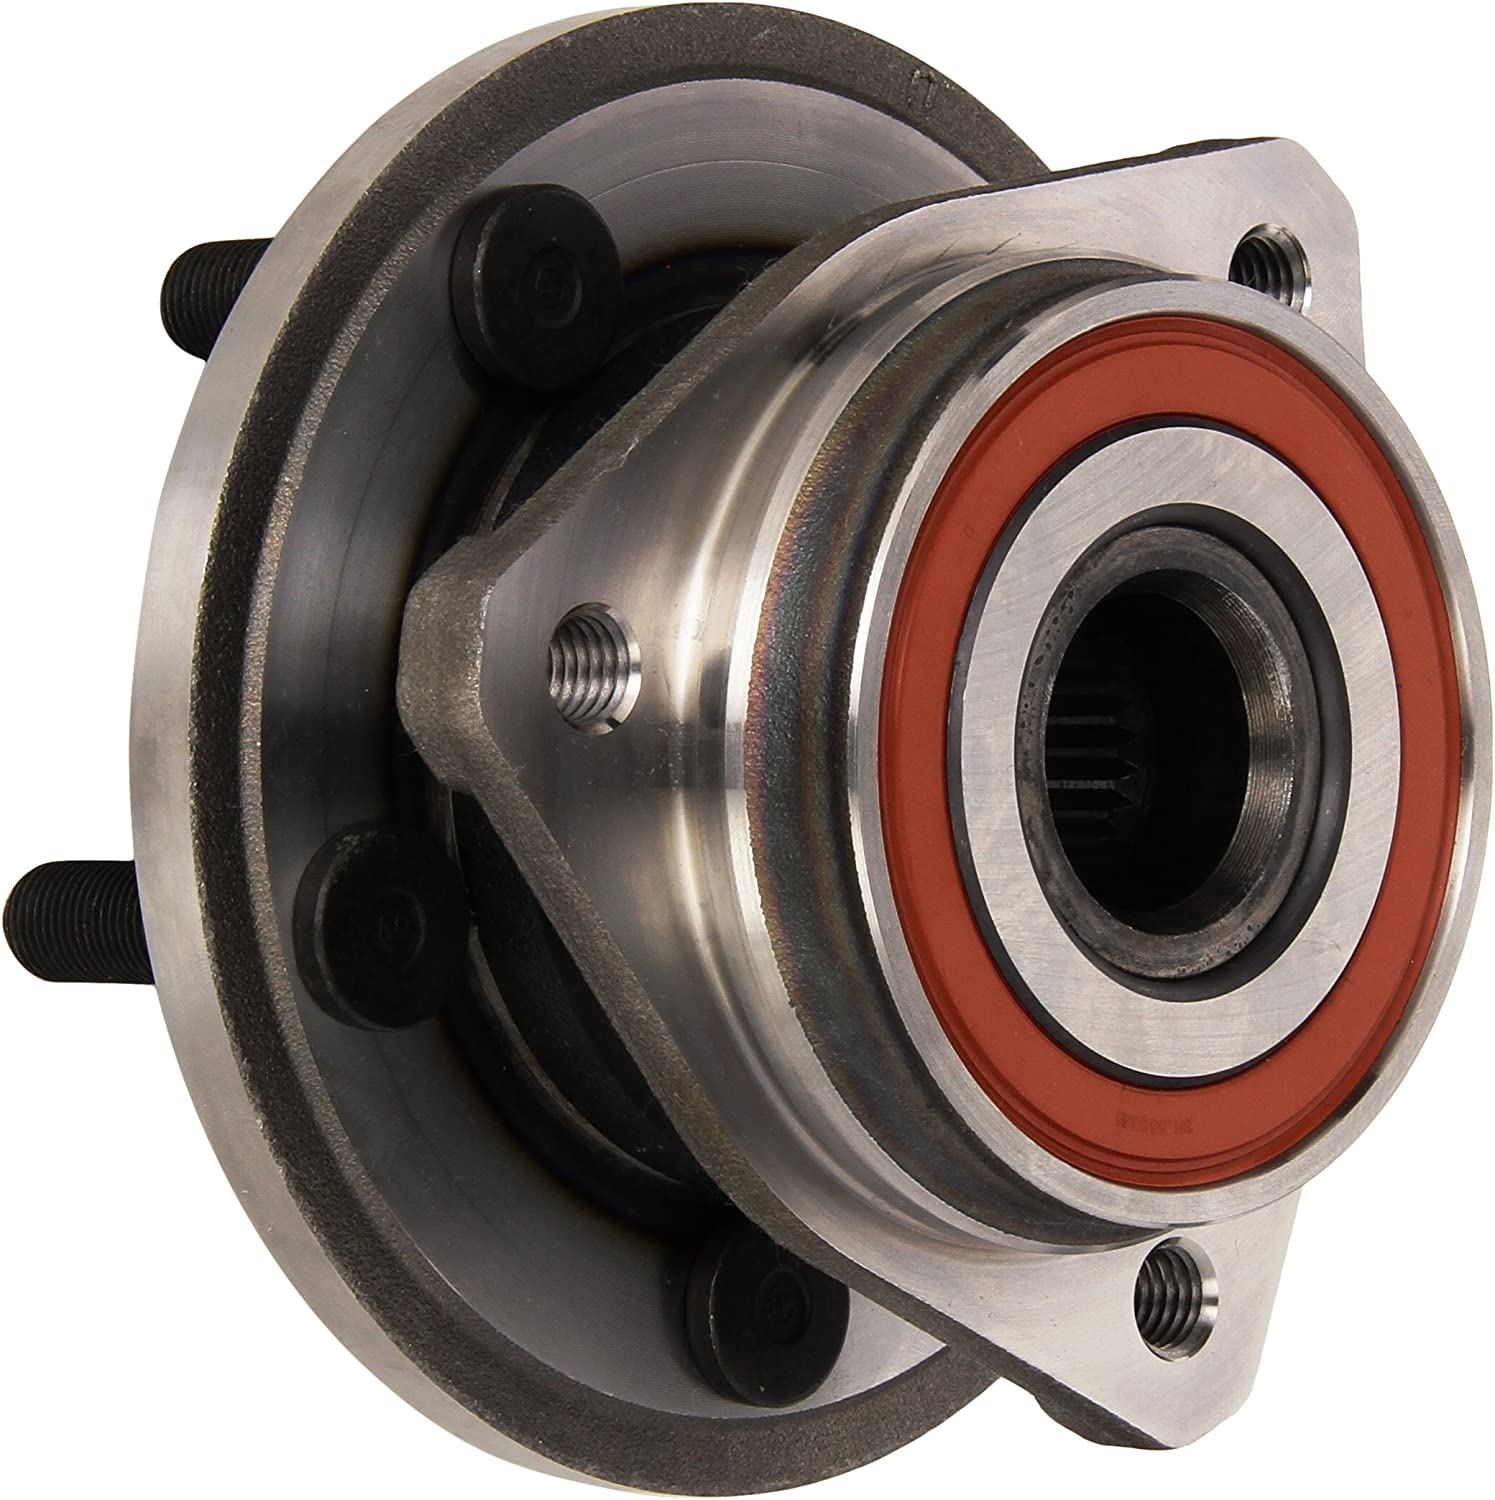 2003 fits Jeep TJ Front Wheel Bearing and Hub Assembly Left and Right Note: 4WD - Two Bearings Included with Two Years Warranty